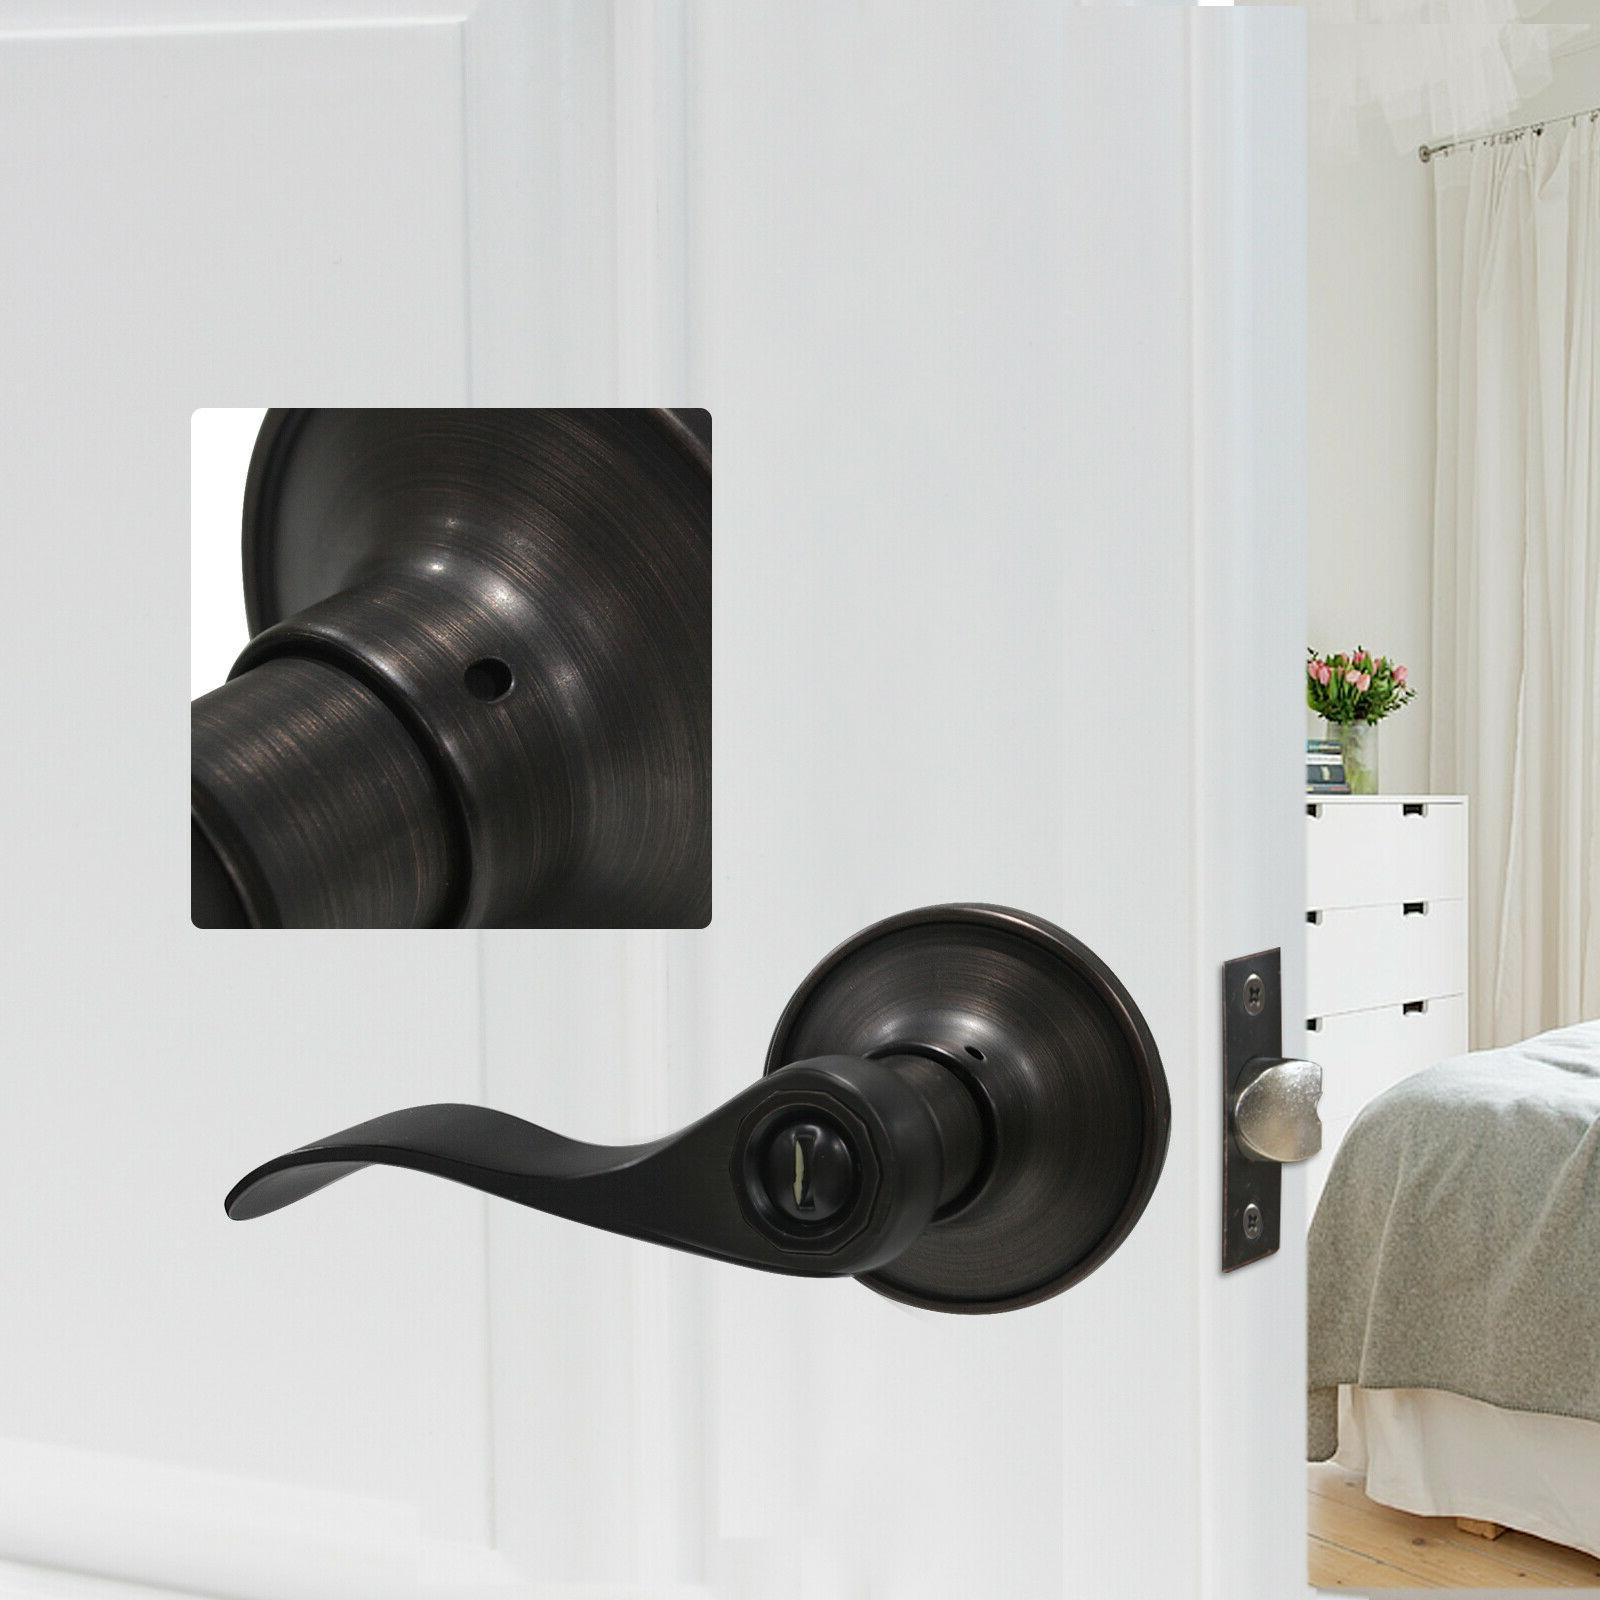 Oil Door Lever Entry/Passage Knobs